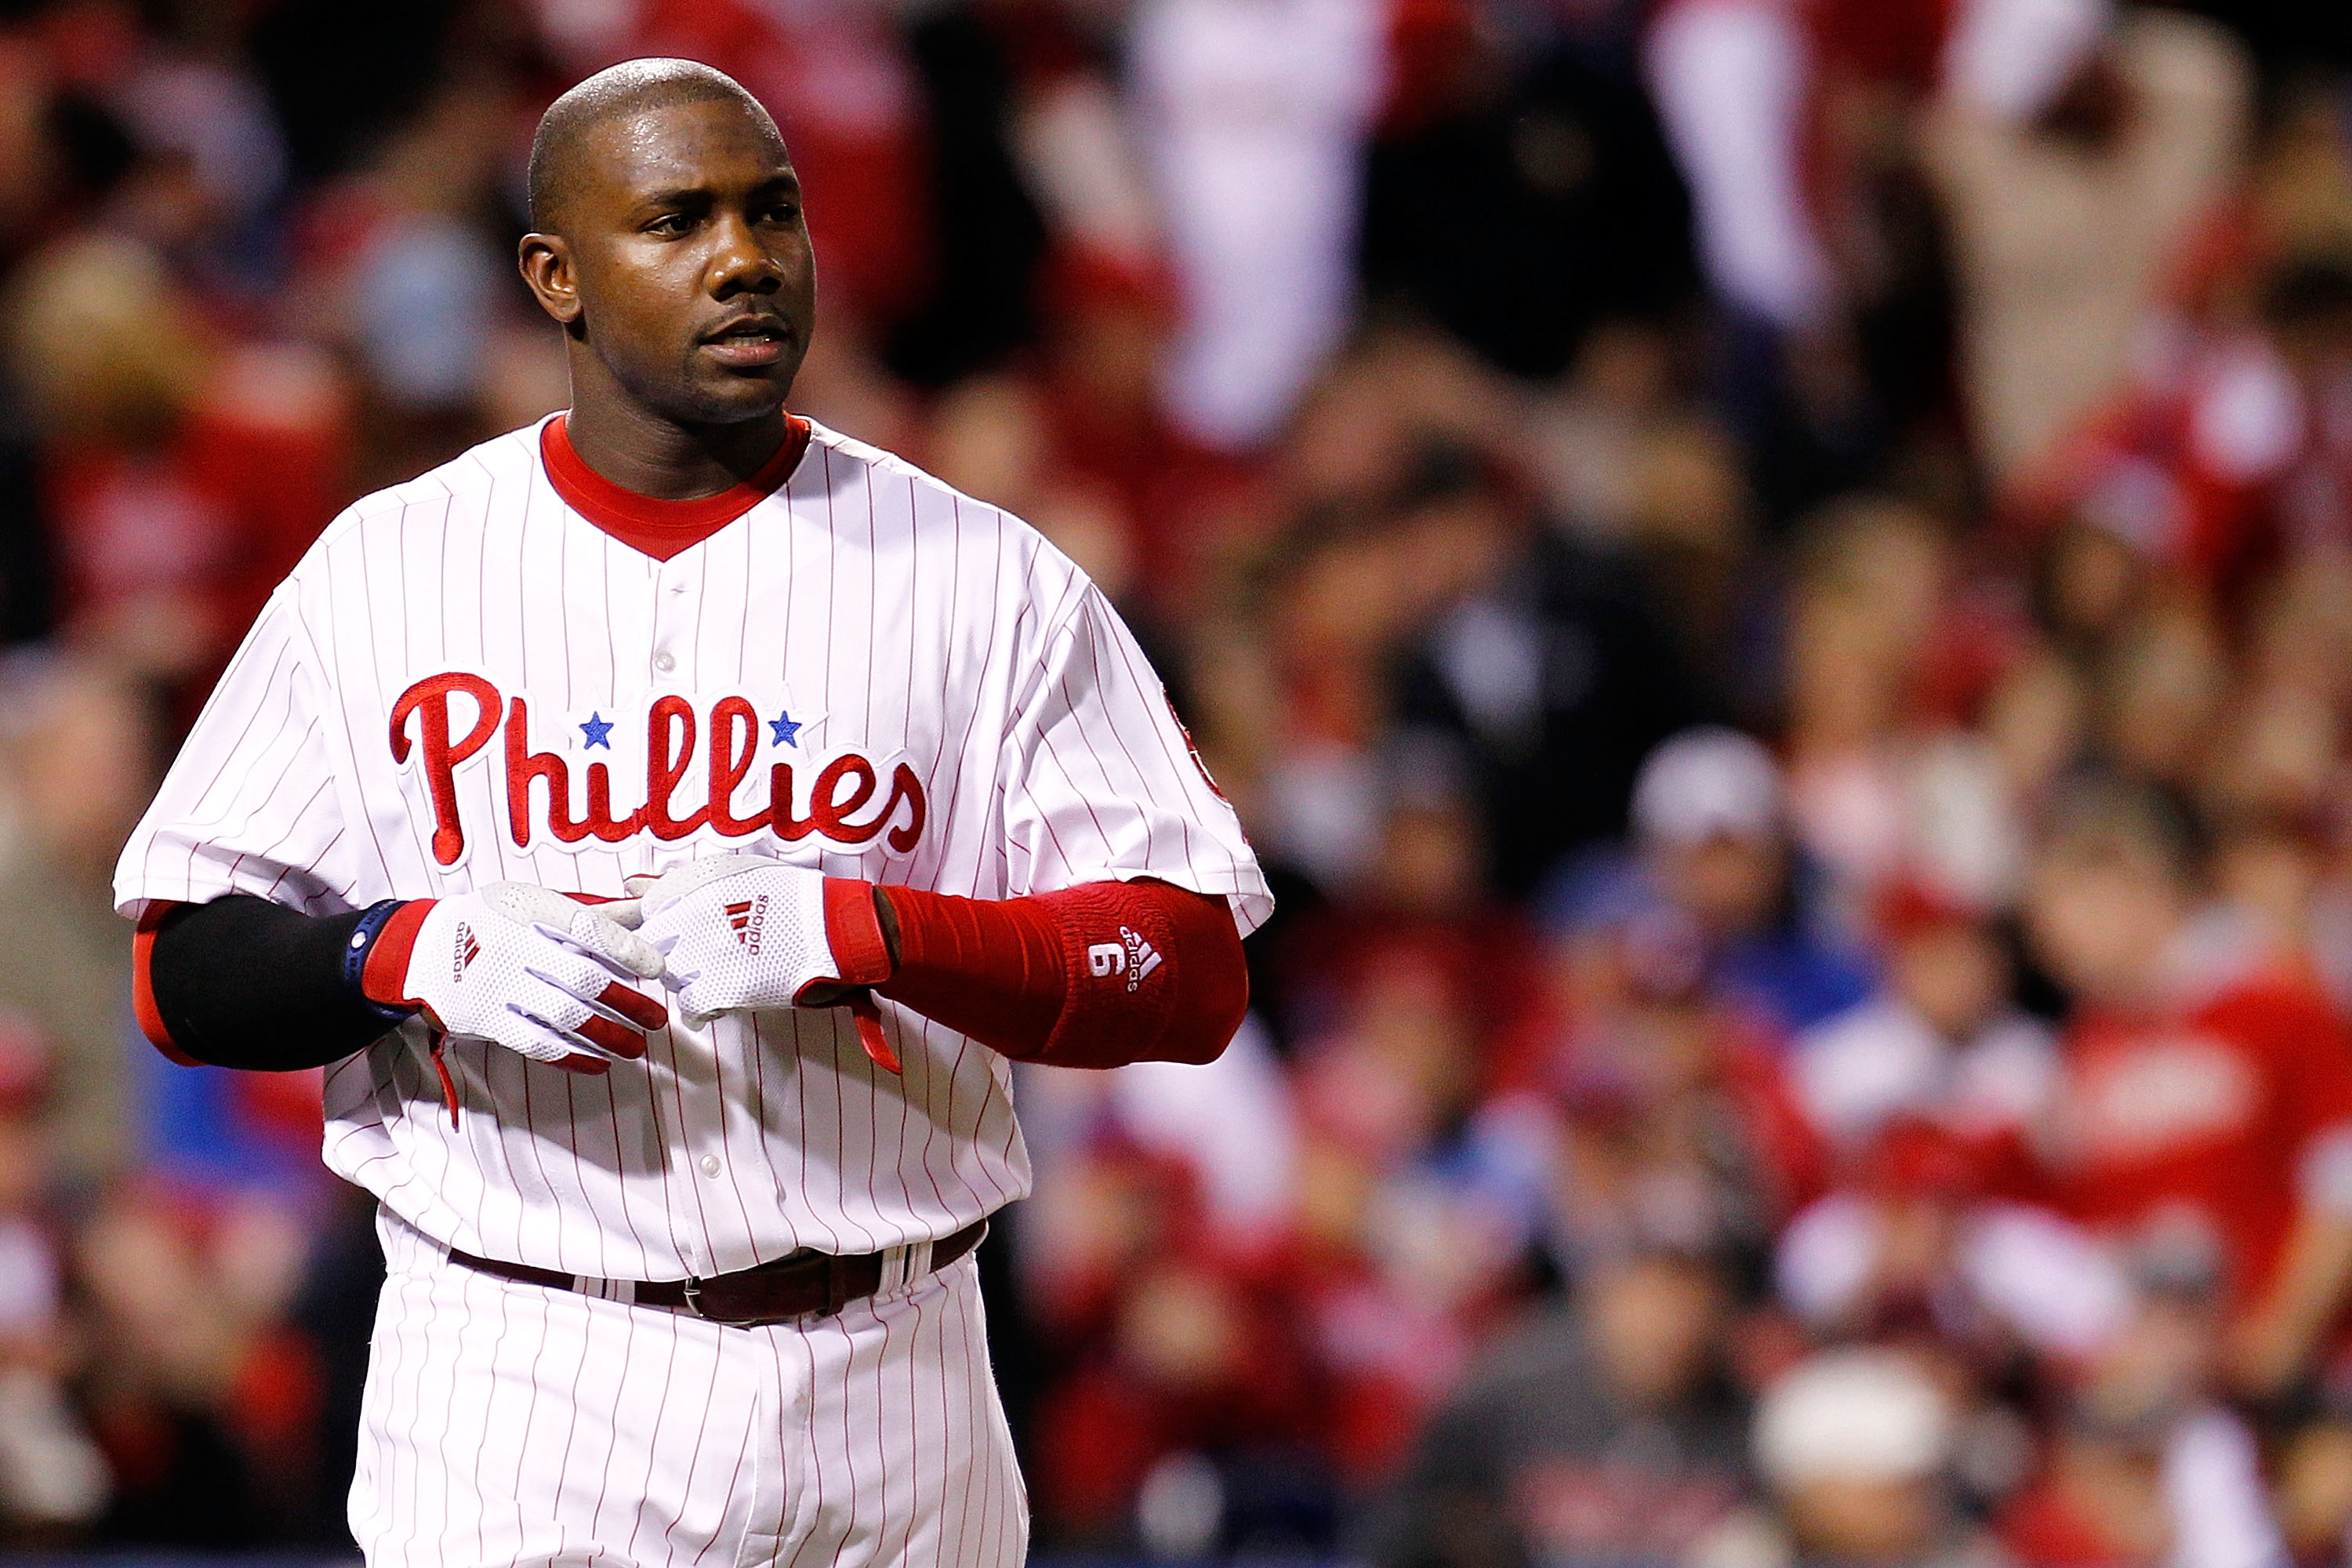 PHILADELPHIA - OCTOBER 16:  Ryan Howard #6 of the Philadelphia Phillies reacts after he strikes out against the San Francisco Giants in Game One of the NLCS during the 2010 MLB Playoffs at Citizens Bank Park on October 16, 2010 in Philadelphia, Pennsylvan